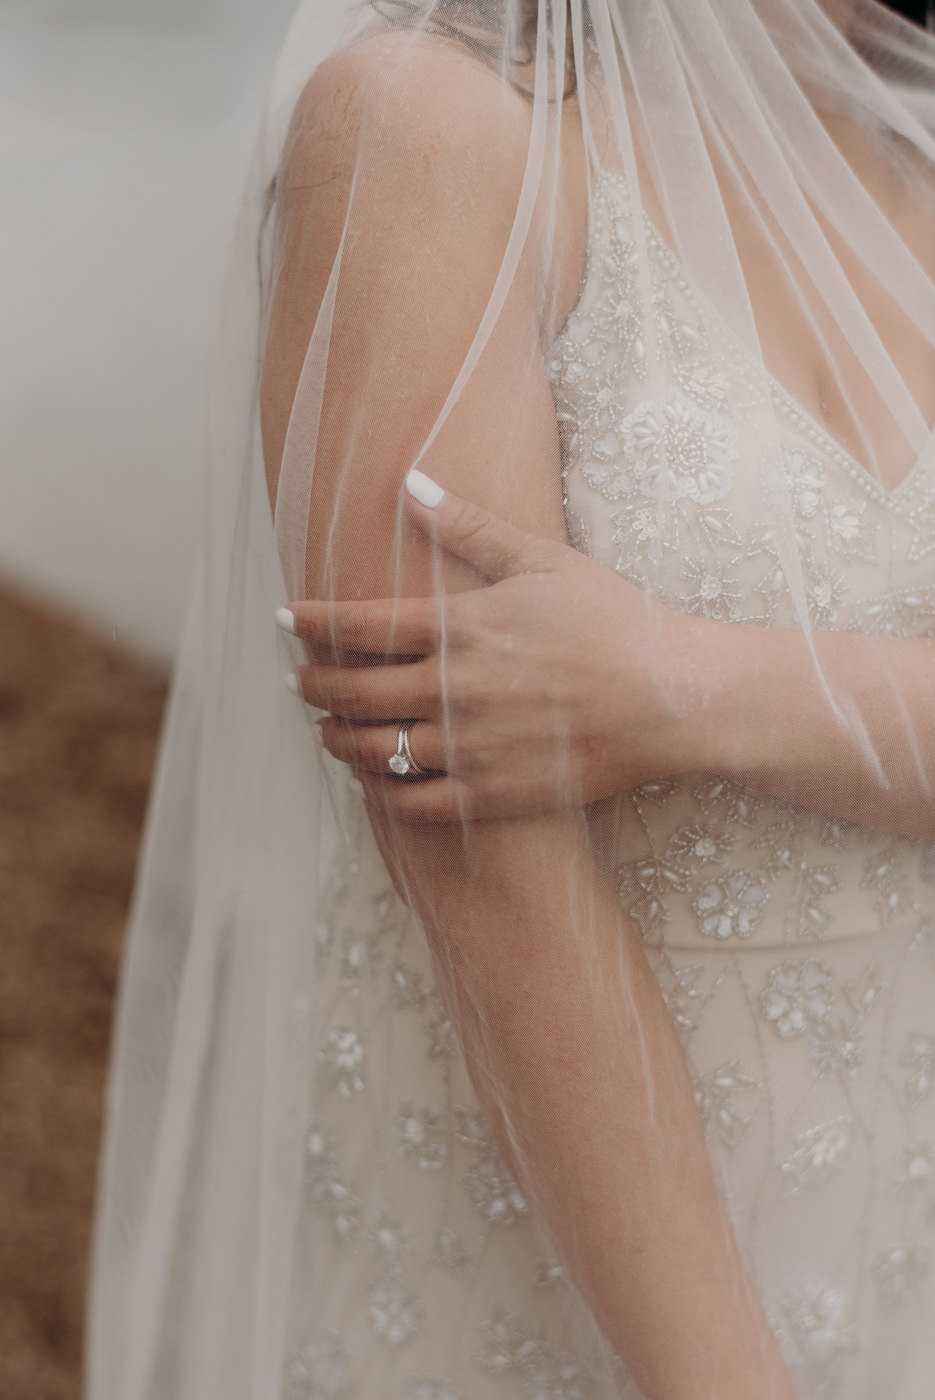 brides wedding ring covered in veil